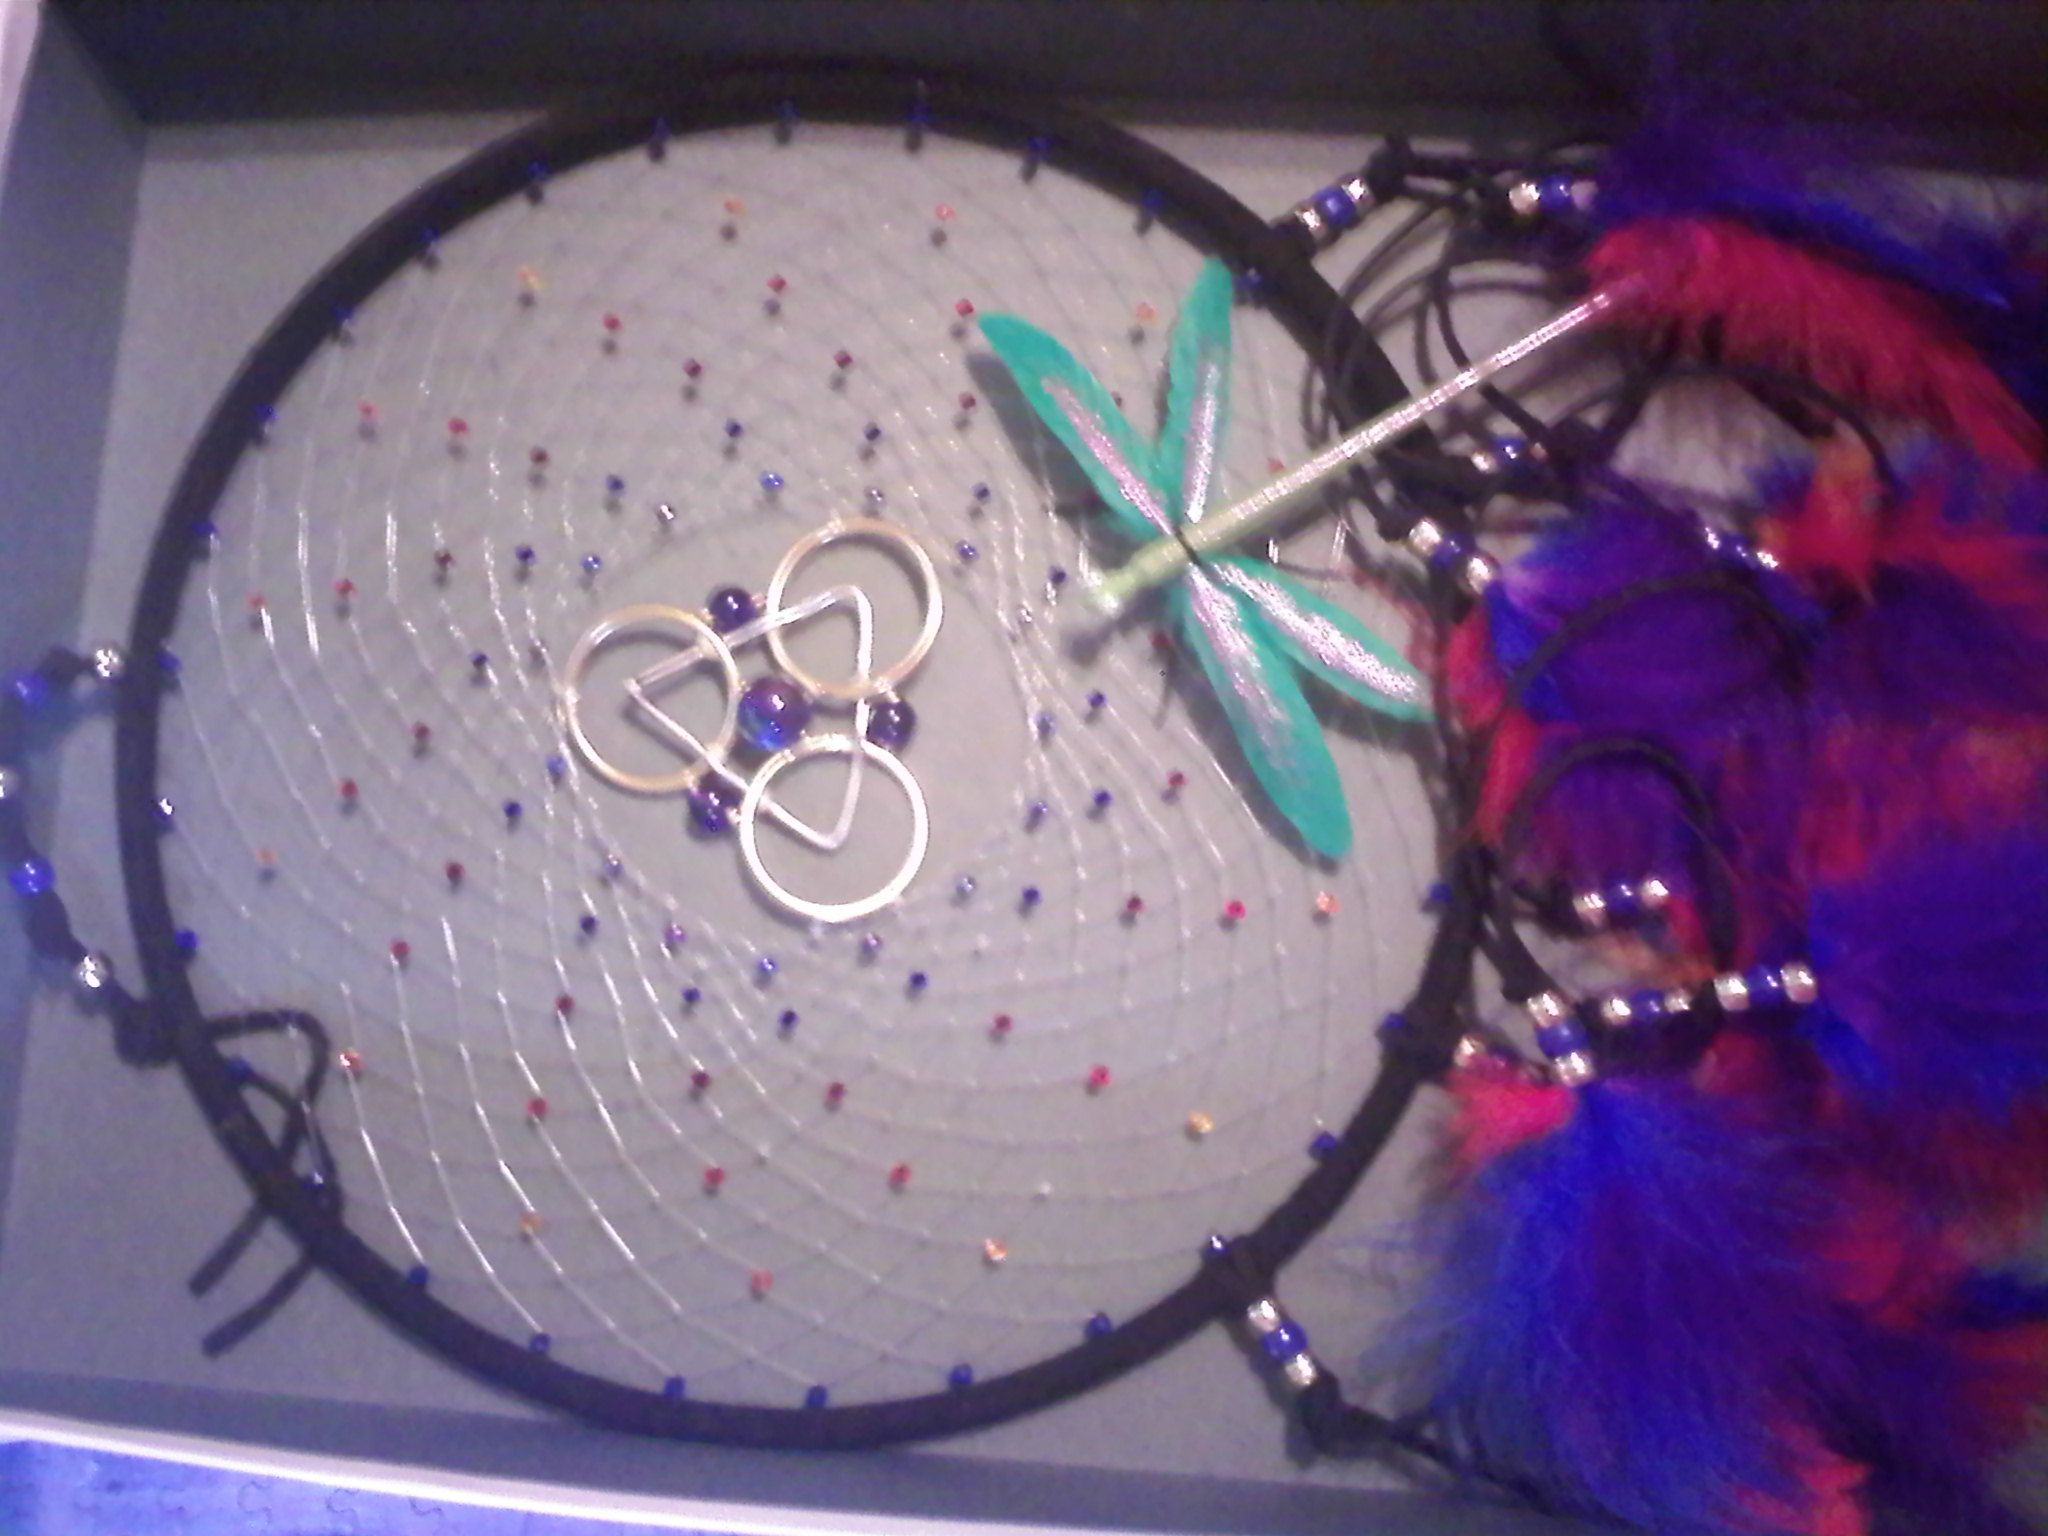 dreamcatcher for coheed and cambria coheed and cambria pinterest coheed and cambria dream. Black Bedroom Furniture Sets. Home Design Ideas